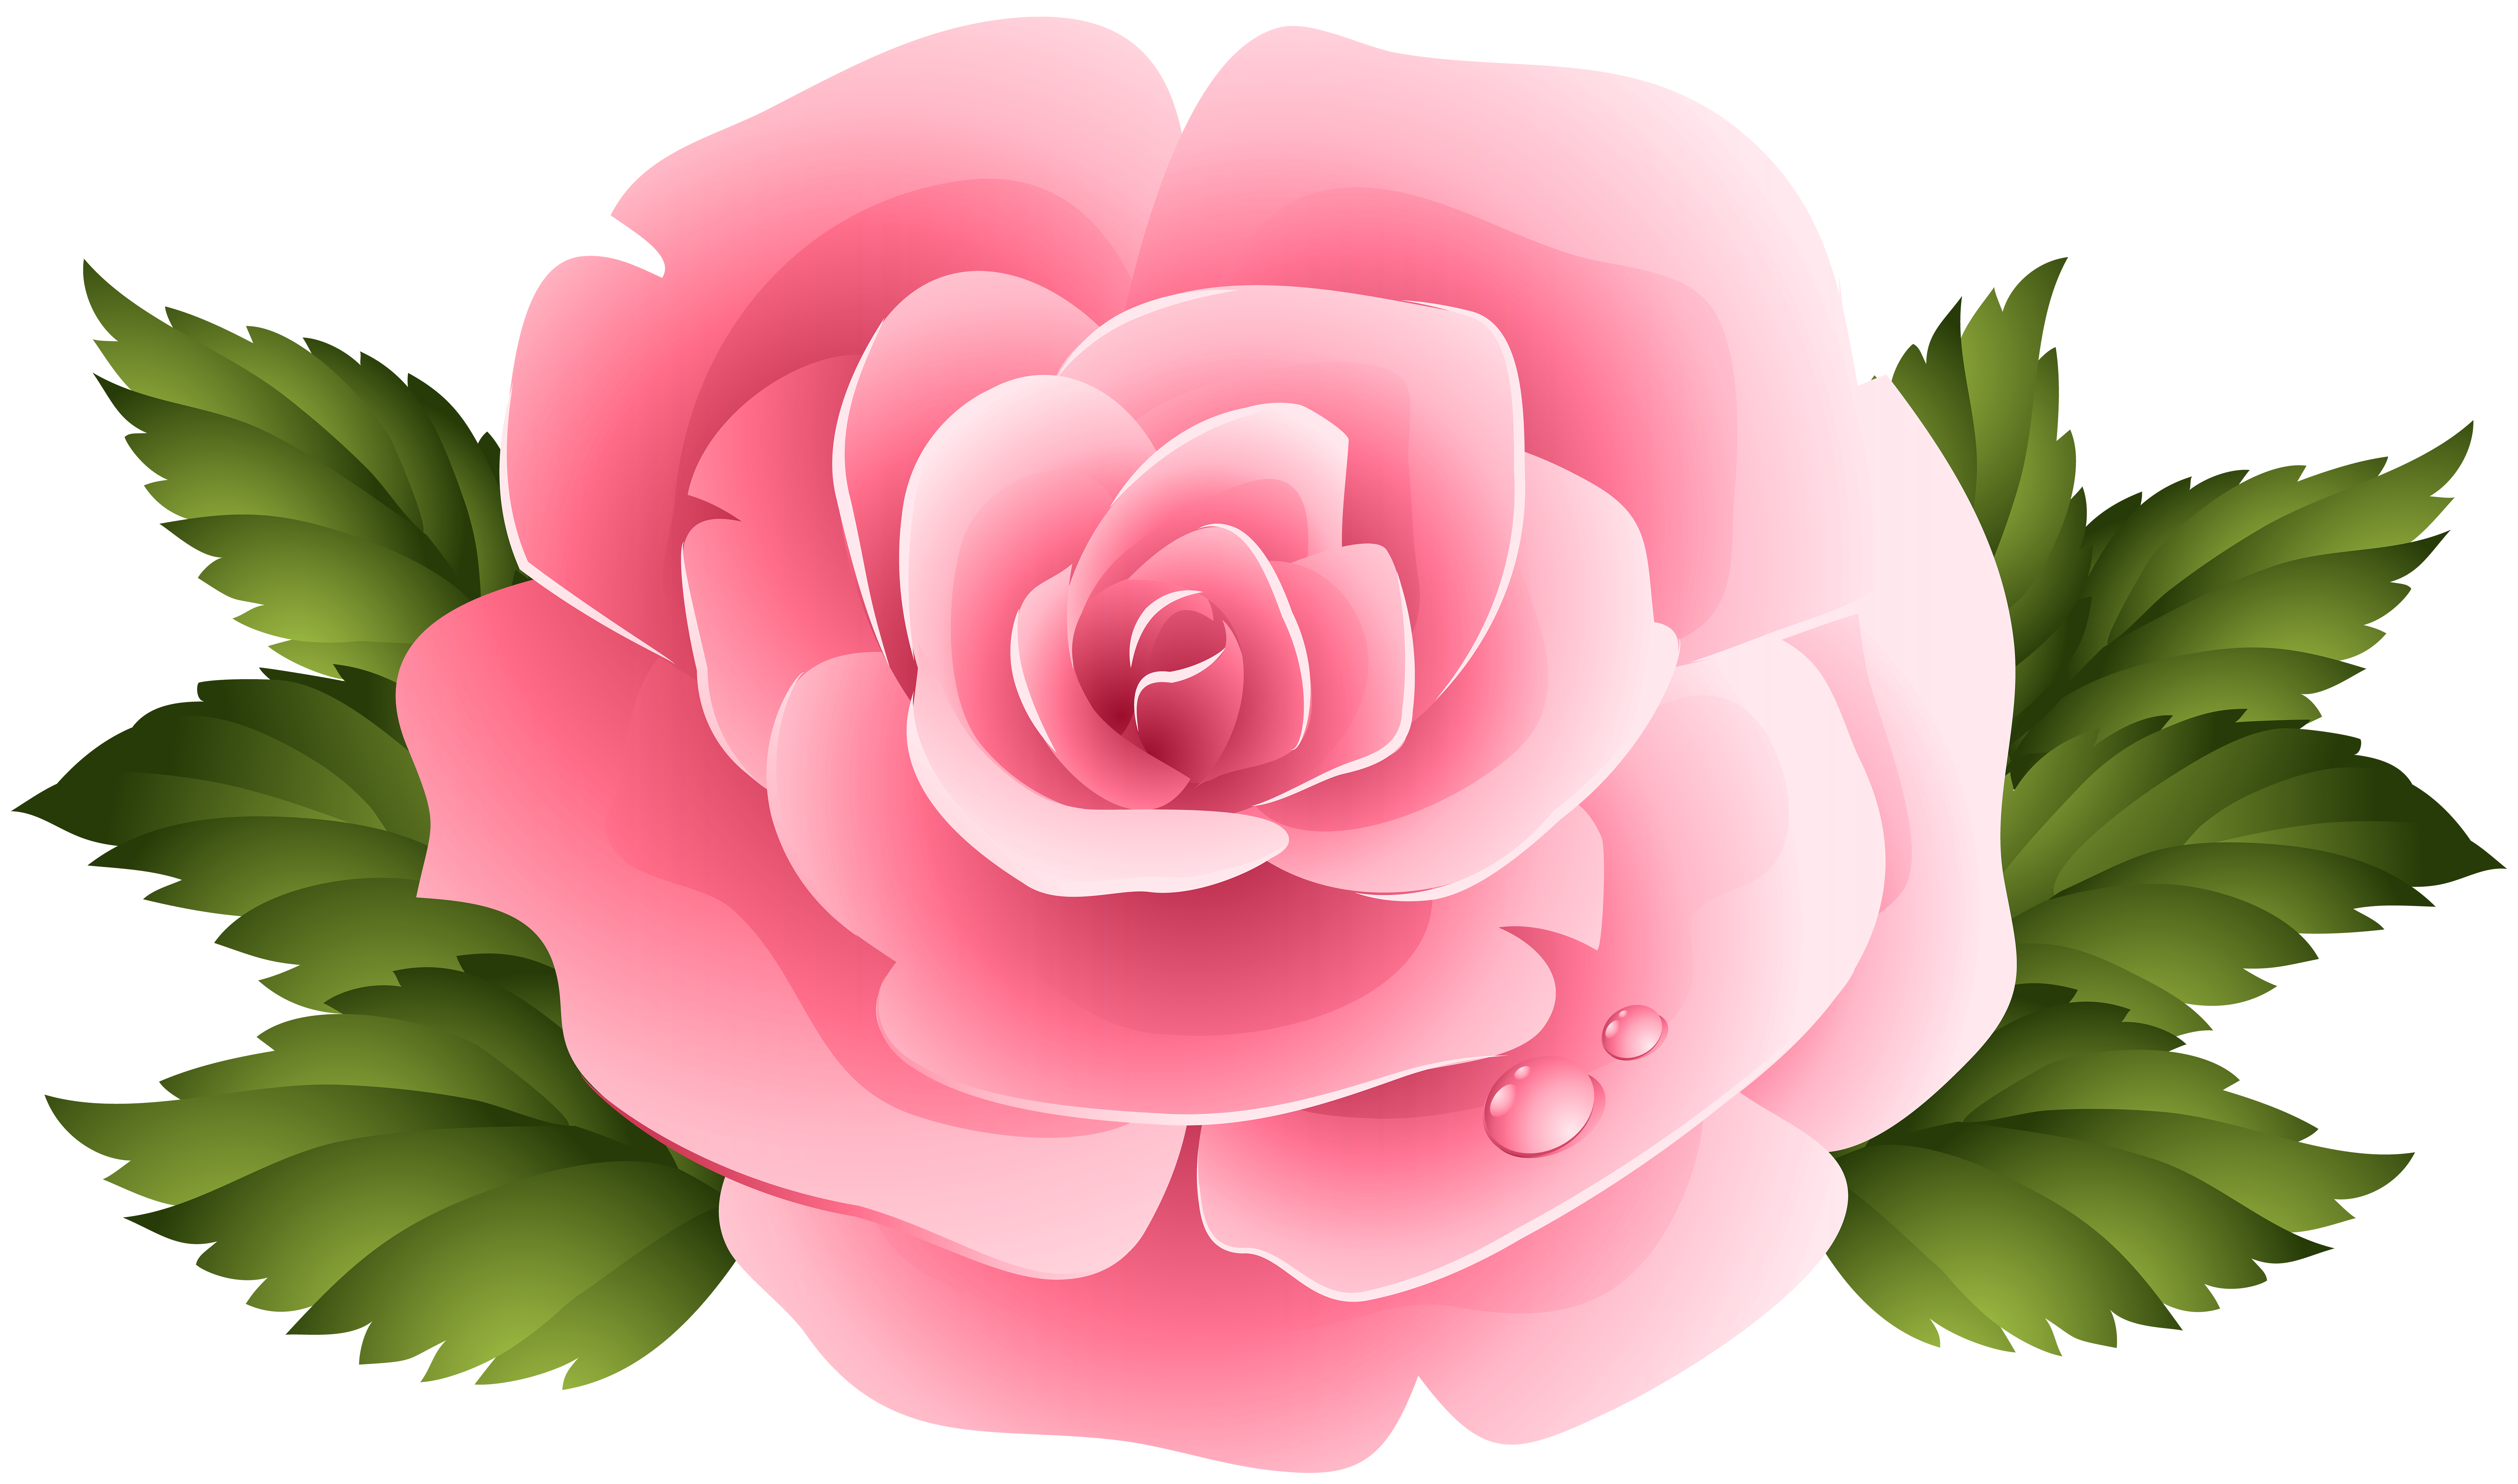 Clipart rose bed. Pin by on pinterest